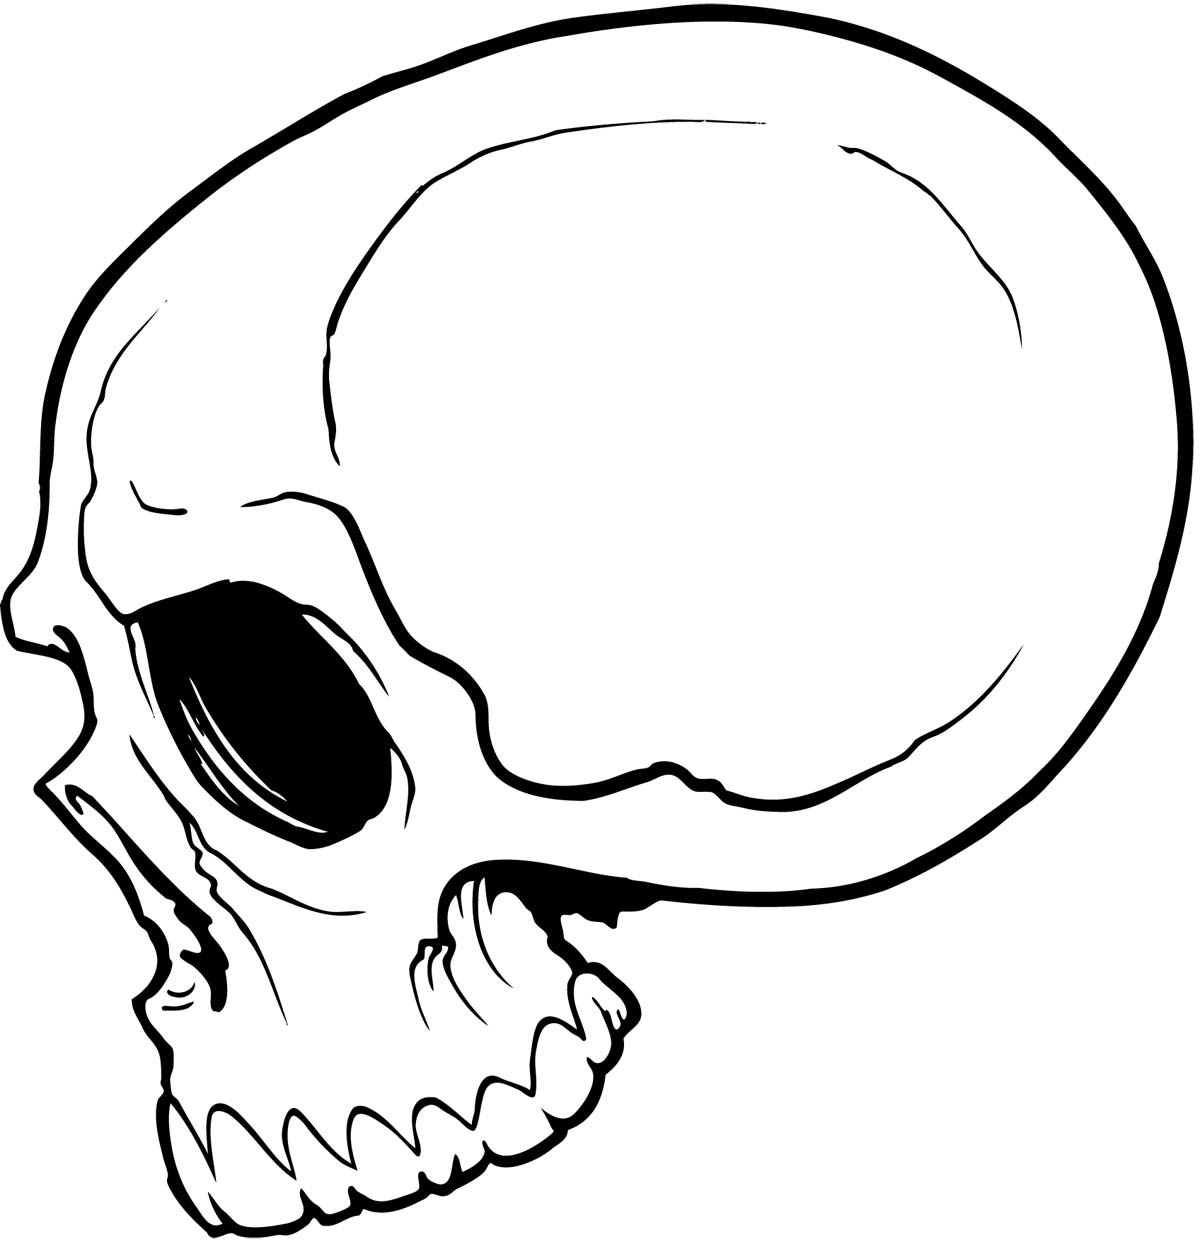 Skull Line Drawing Tattoo : Skull drawing images cliparts